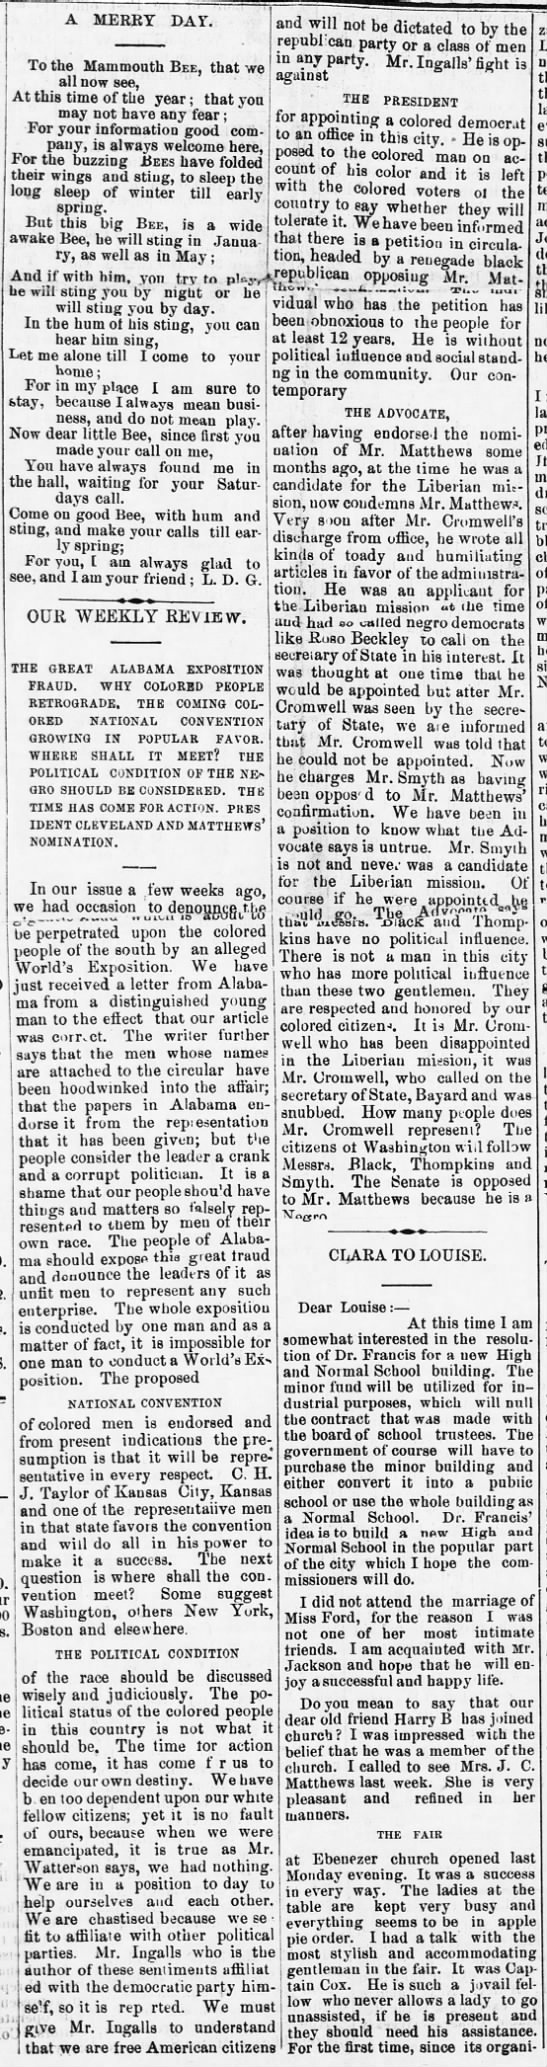 1886-12-25-WashingtonBee-p1-OurWeeklyReview - A MERRY DAY TO the Mammouth Bee, that we all...